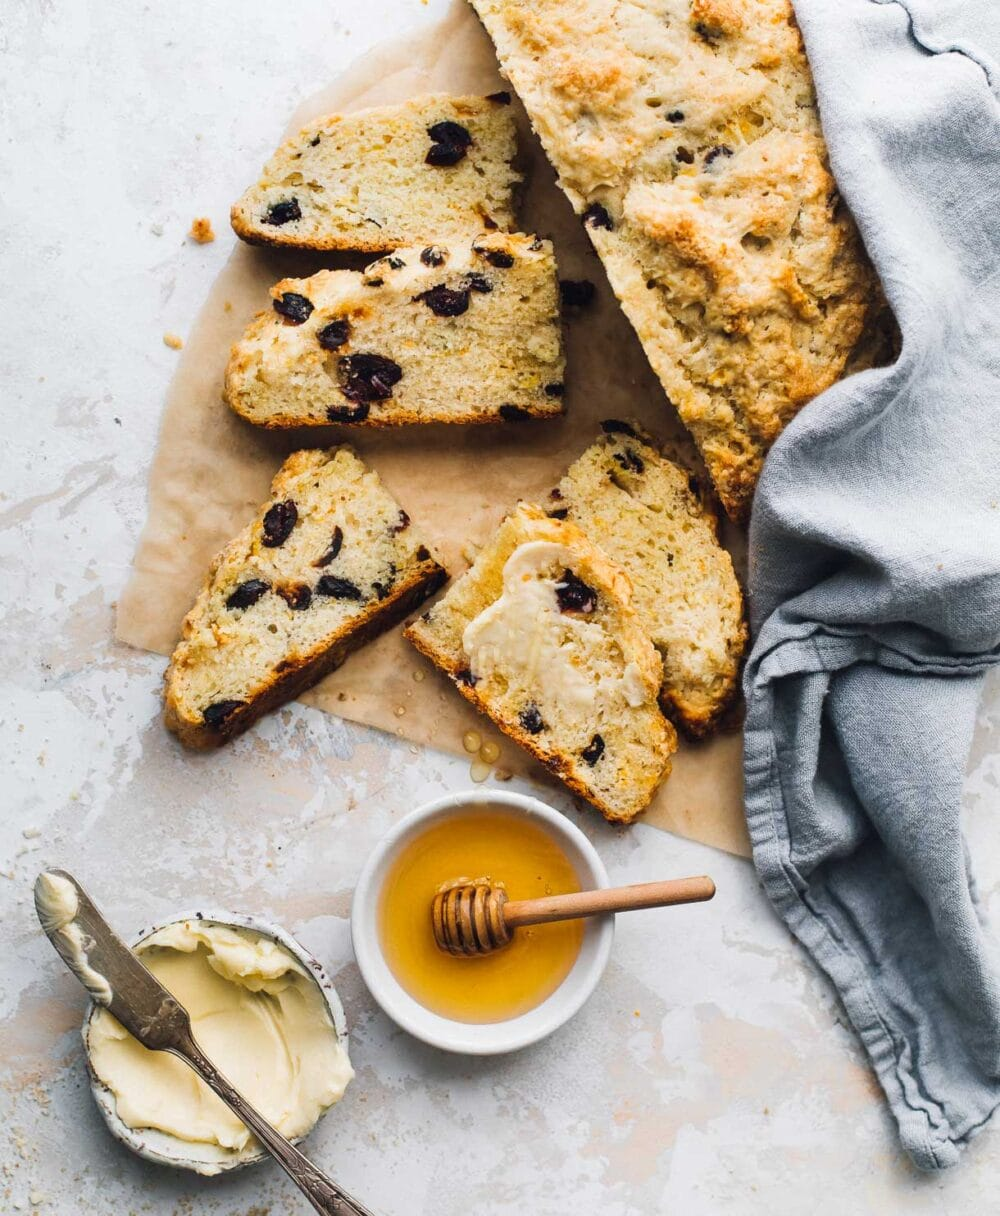 sourdough discard soda bread slices with honey and butter